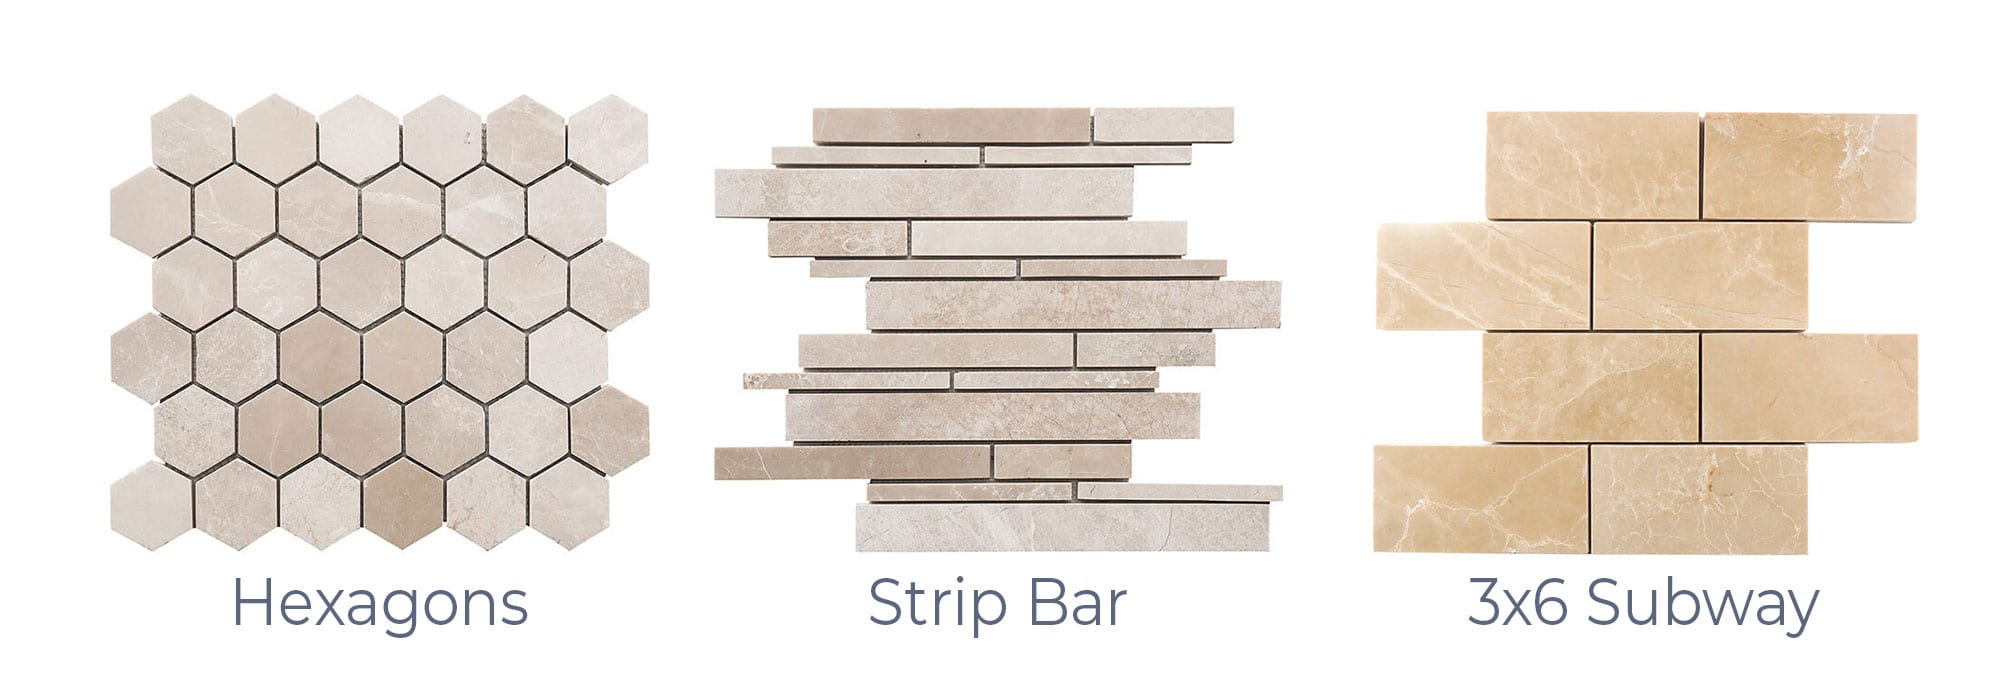 Stoneline-Group-Bianco-Ibiza-Marble-Collection-Marble-Mosaic-varieties-hexagons-Strip-Bar-3×6-Subway-Pictures